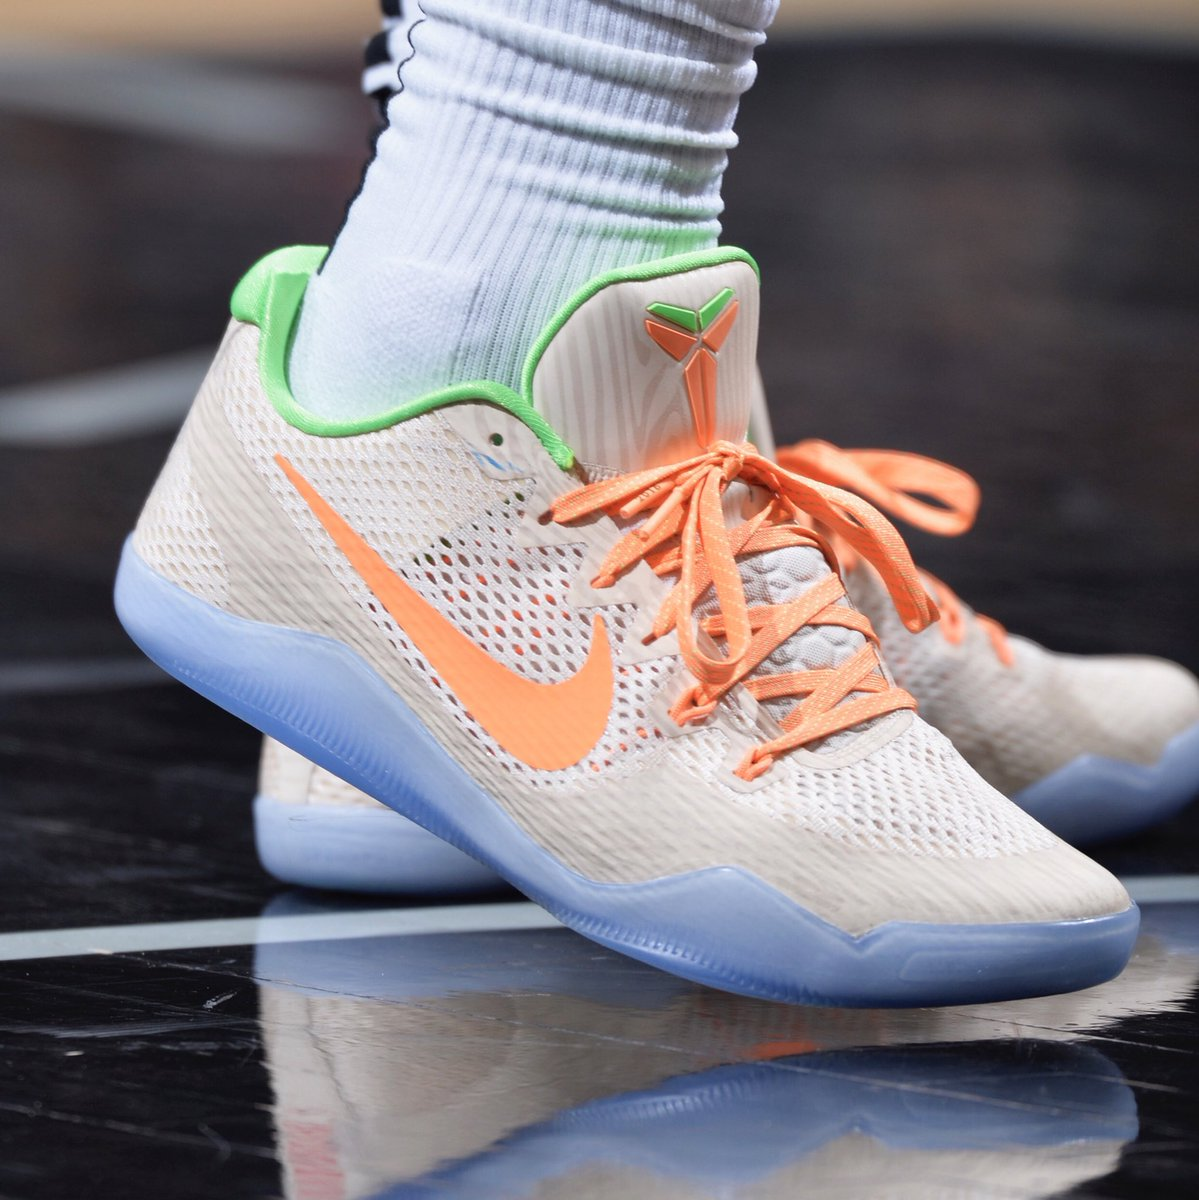 414b85469bbd  SoleCollector 4 months. solewatch demarderozan lacing up the peach jam nike  kobe 11 tonight mark sobhani